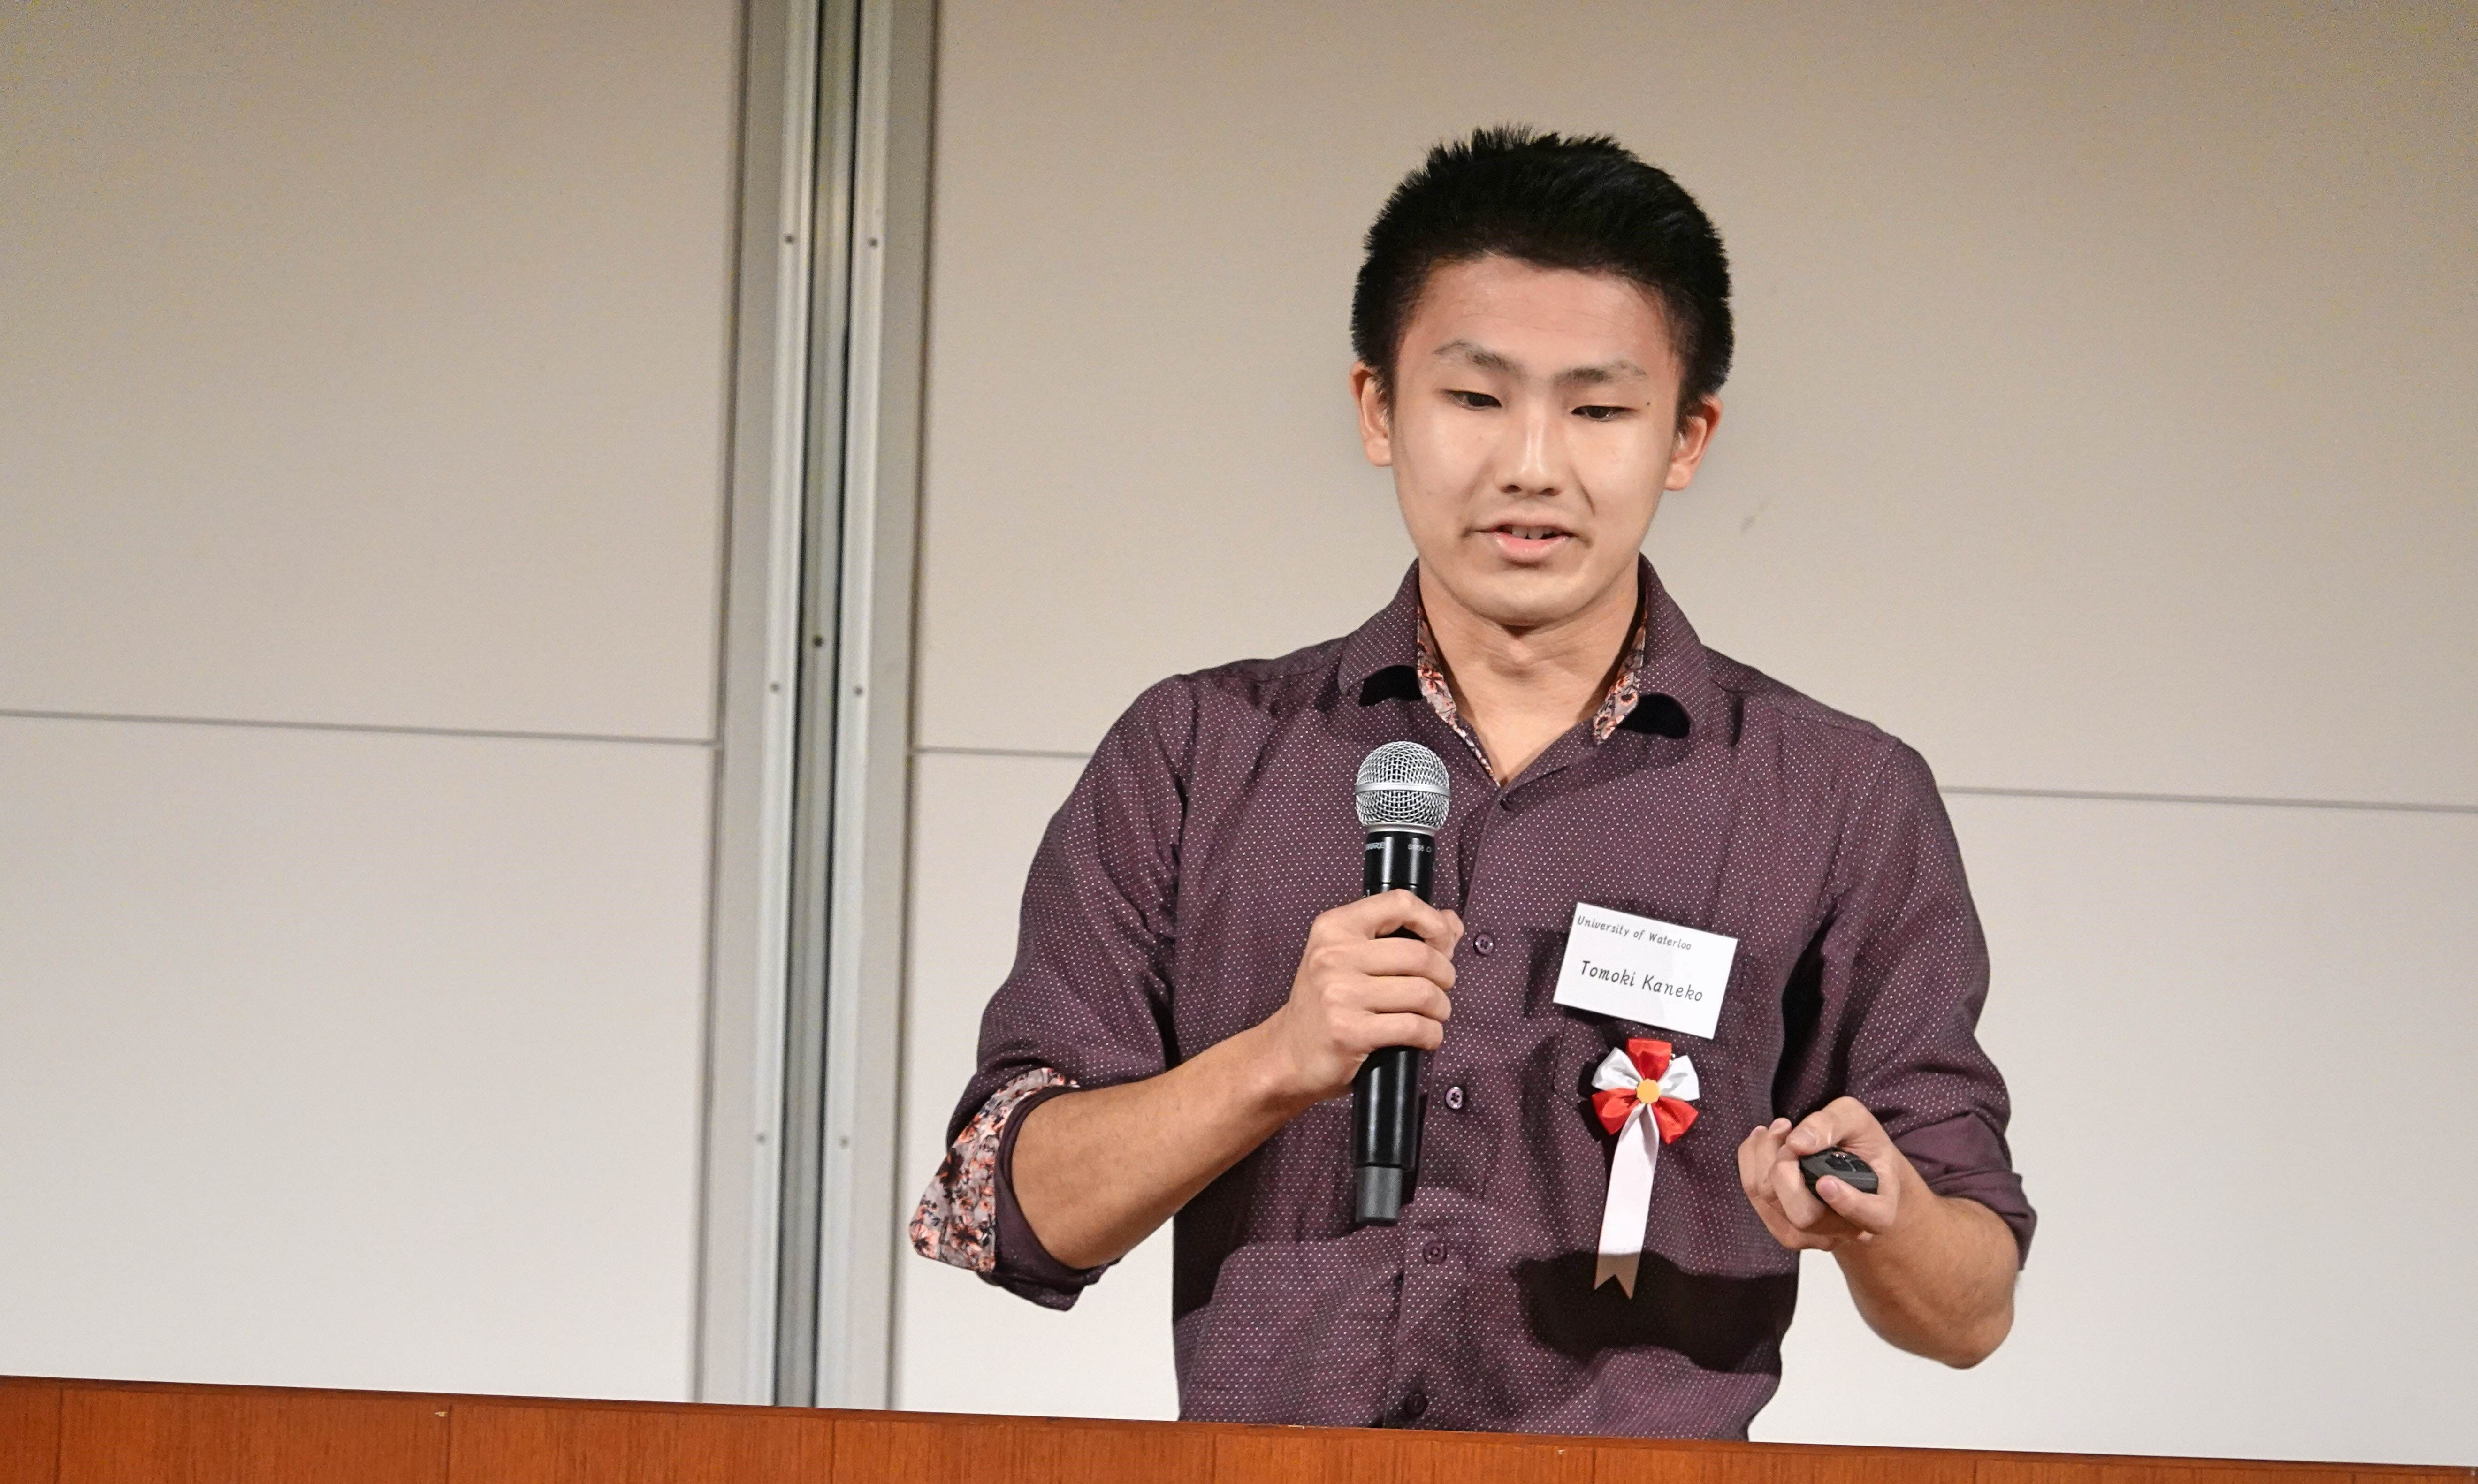 Tomoki presented his design at the final.